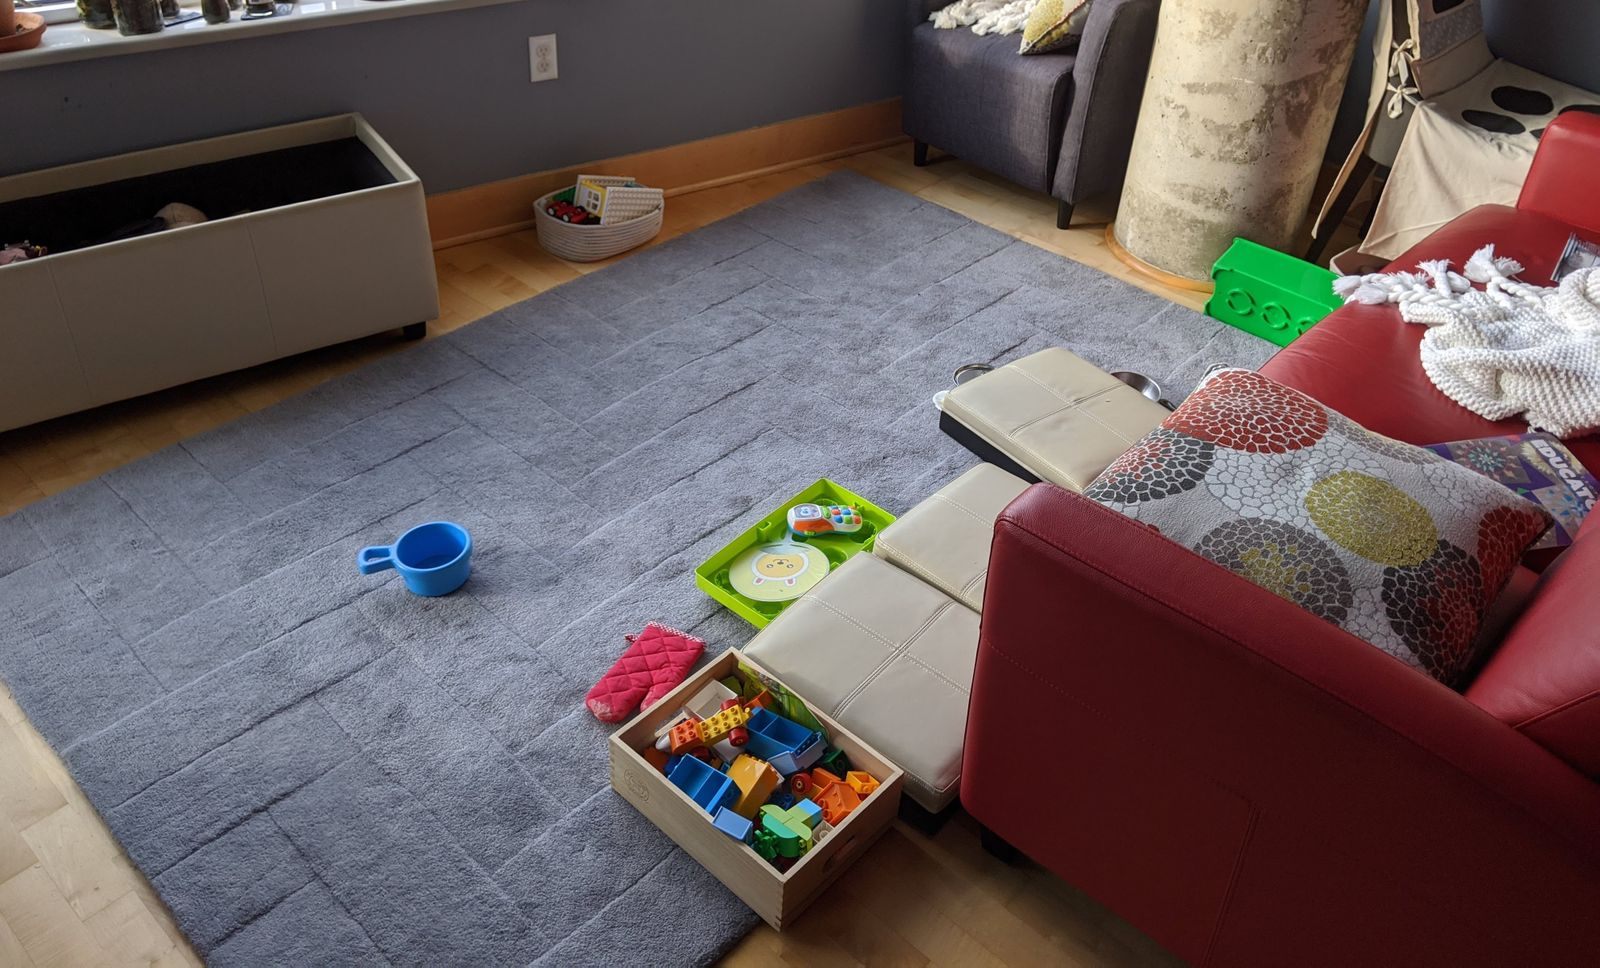 The toy chest doesn't just store toys - it is a toy! Shown here as a couch - complete with her phone right next to her.